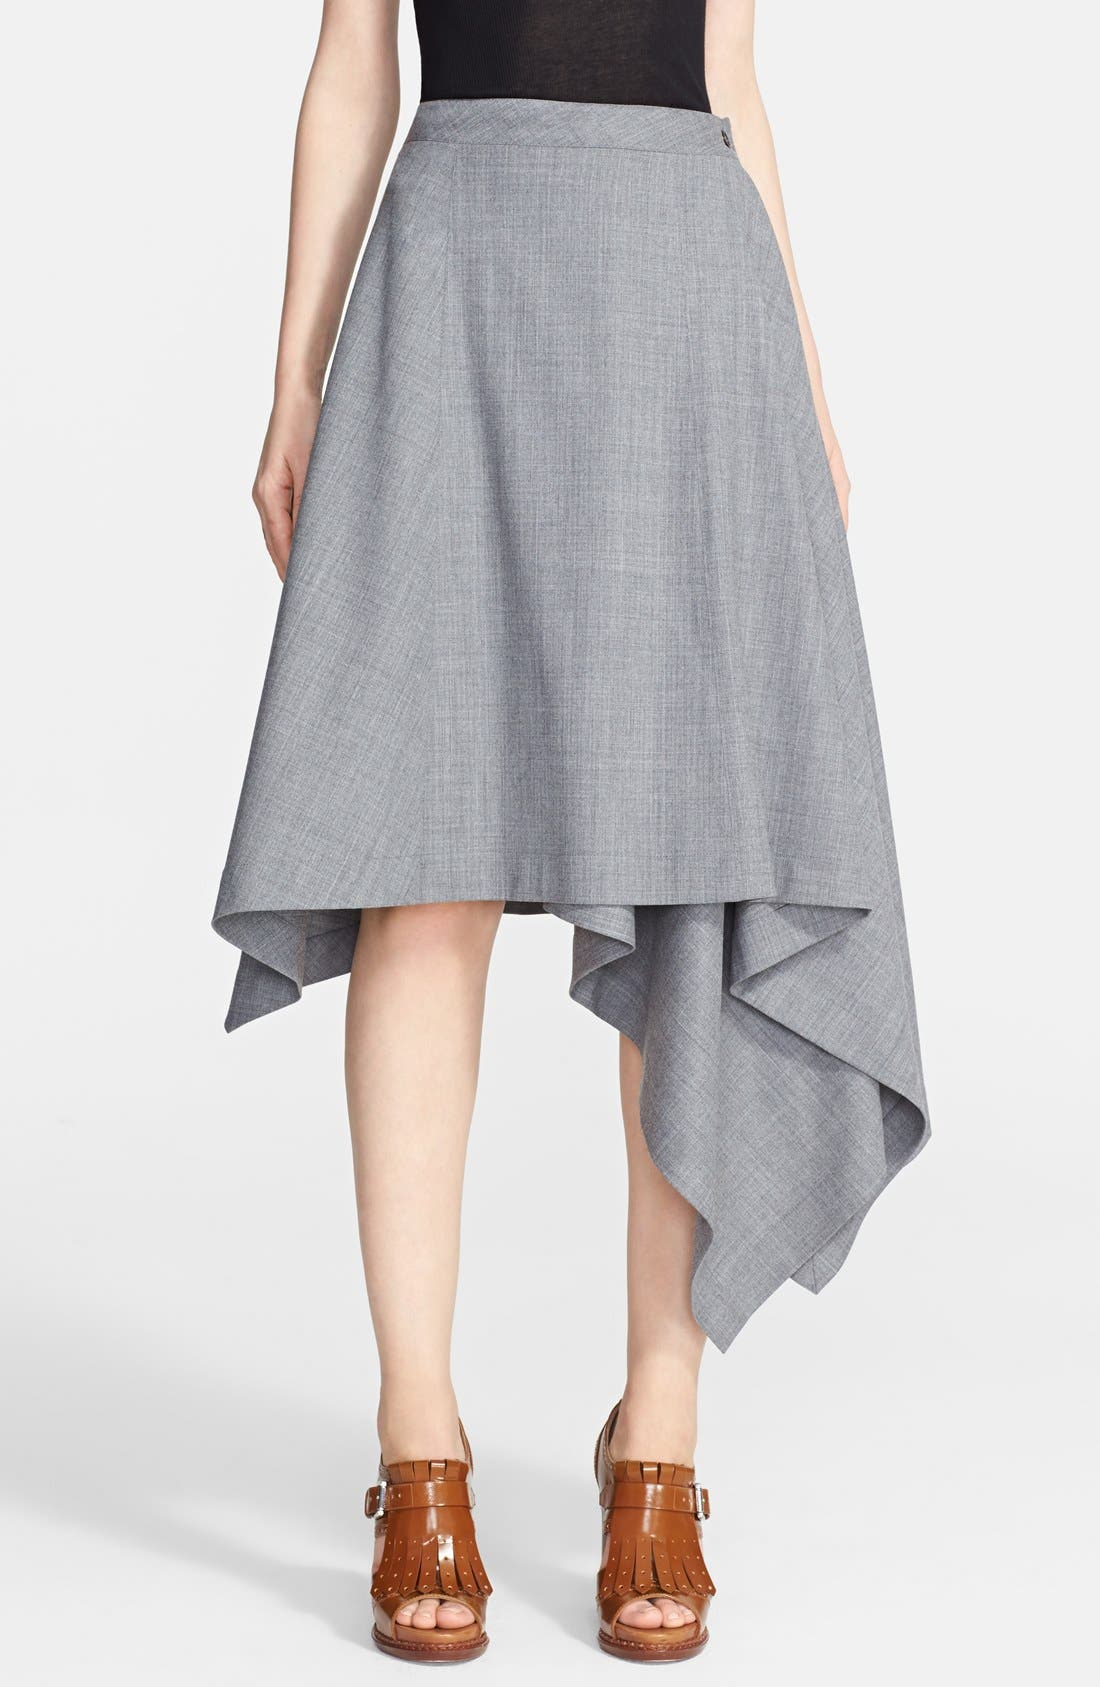 Alternate Image 1 Selected - Michael Kors Asymmetrical Hem Tropical Wool Skirt